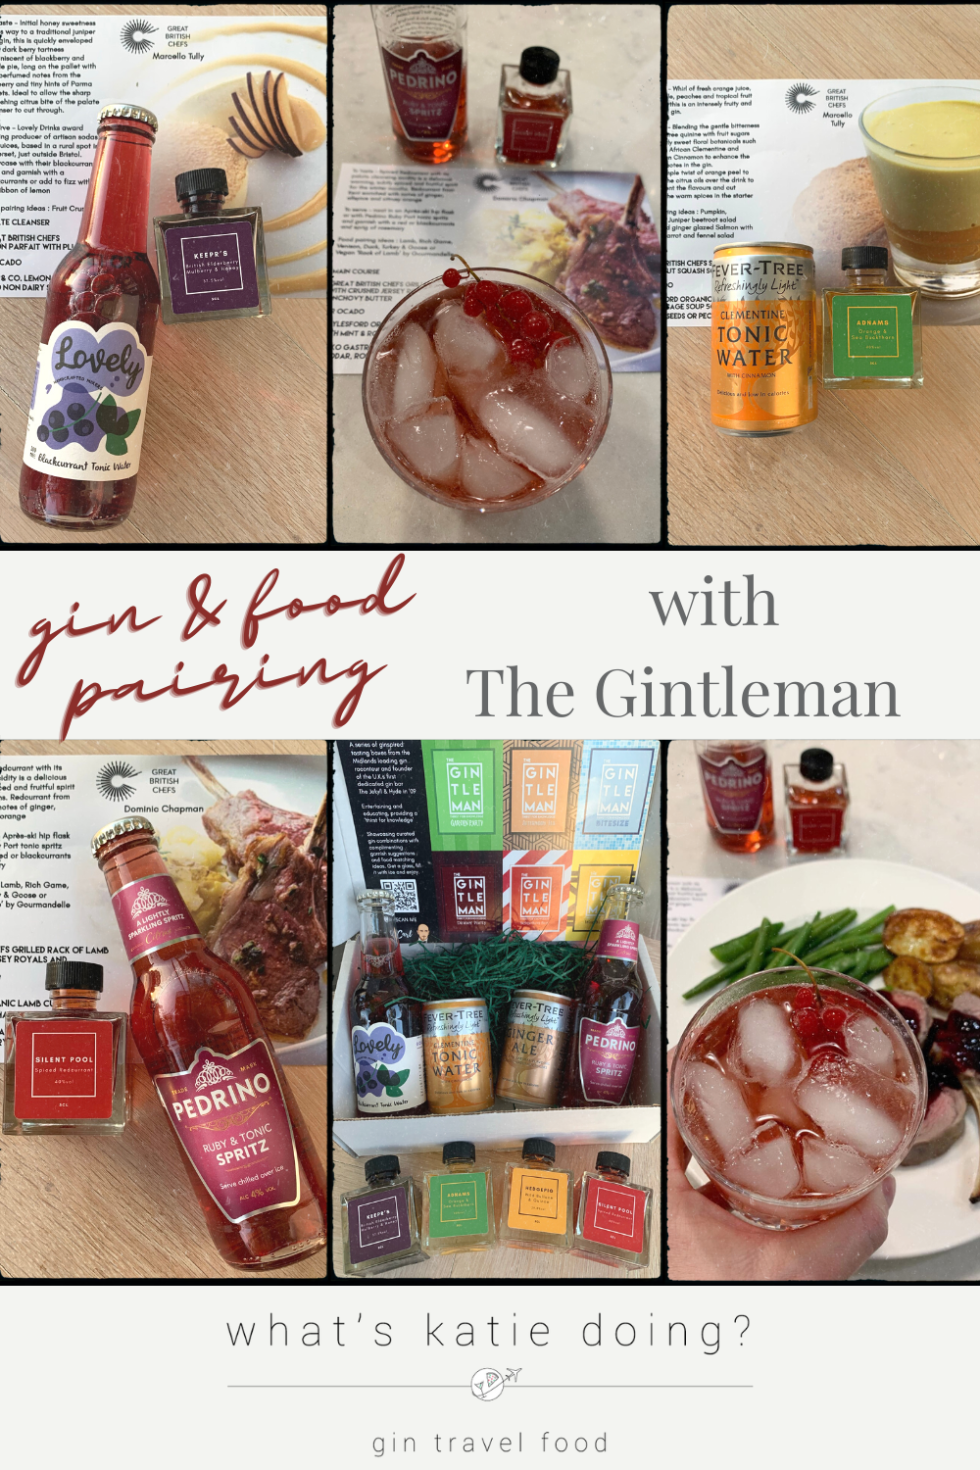 gin & food pairing with the Gintleman - selection of flavoured gins & mixers